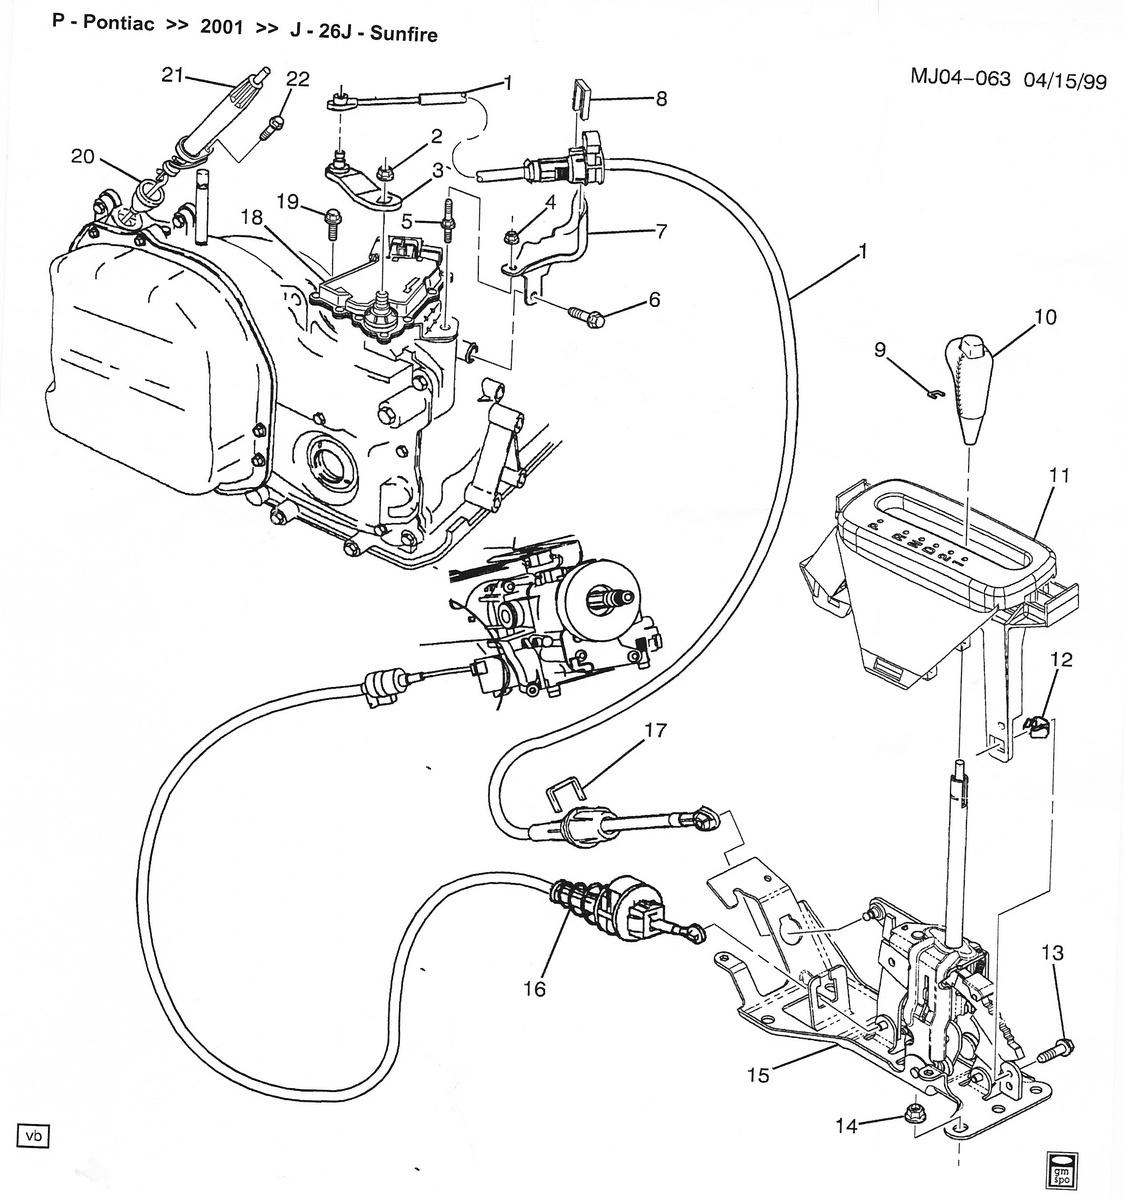 2001 Chevy Cavalier Fuse Box Under Hood Wiring Library In S10 Underhood Diagram